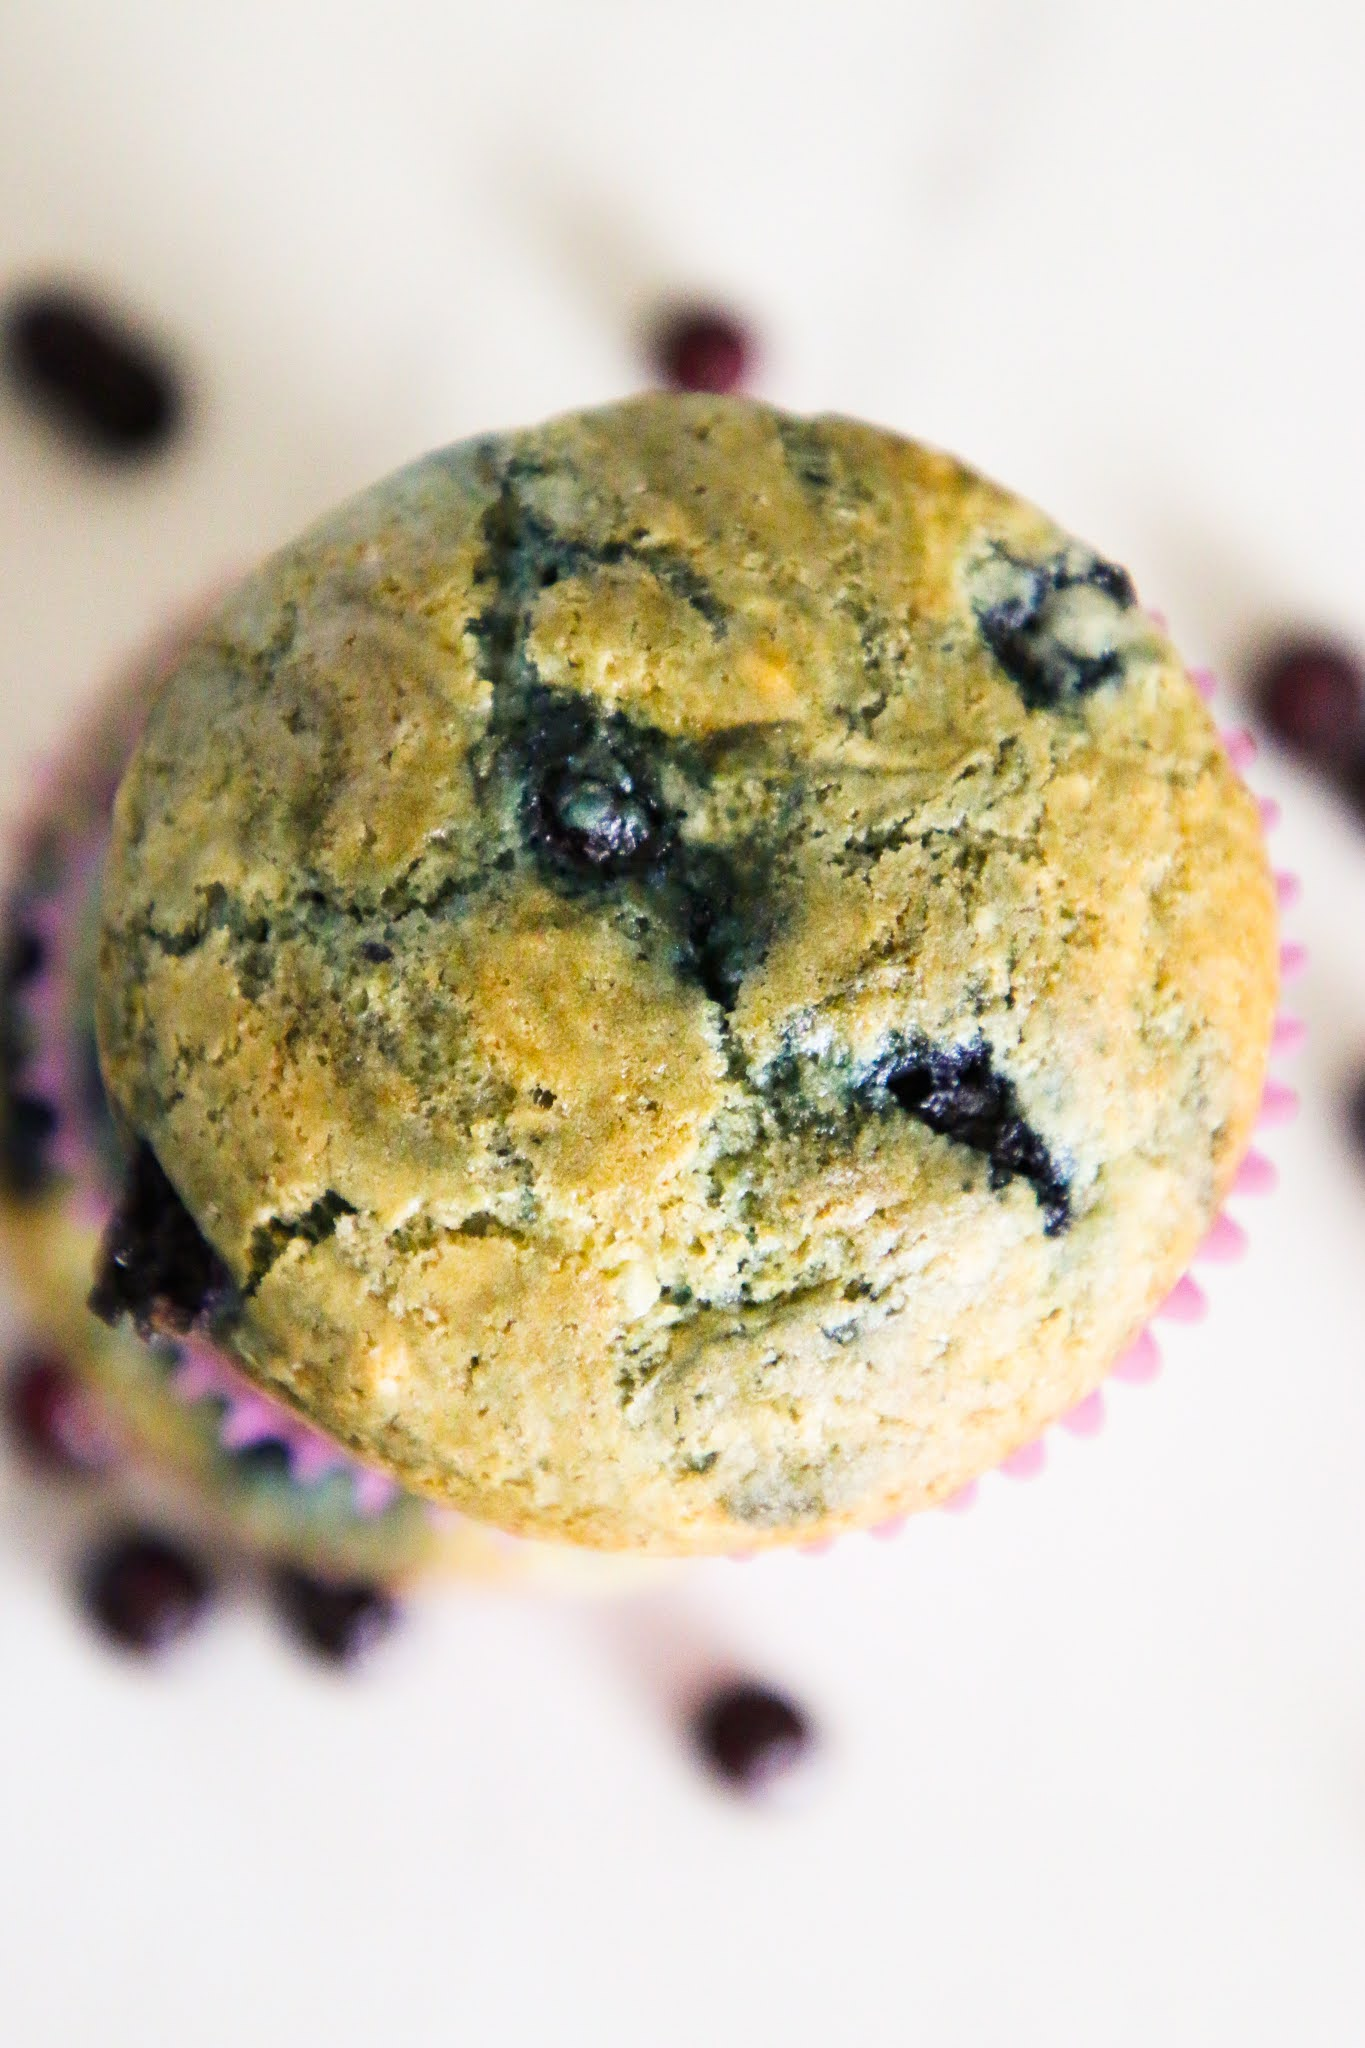 The top of a blueberry muffin on a marble table with scattered blueberries in the background.